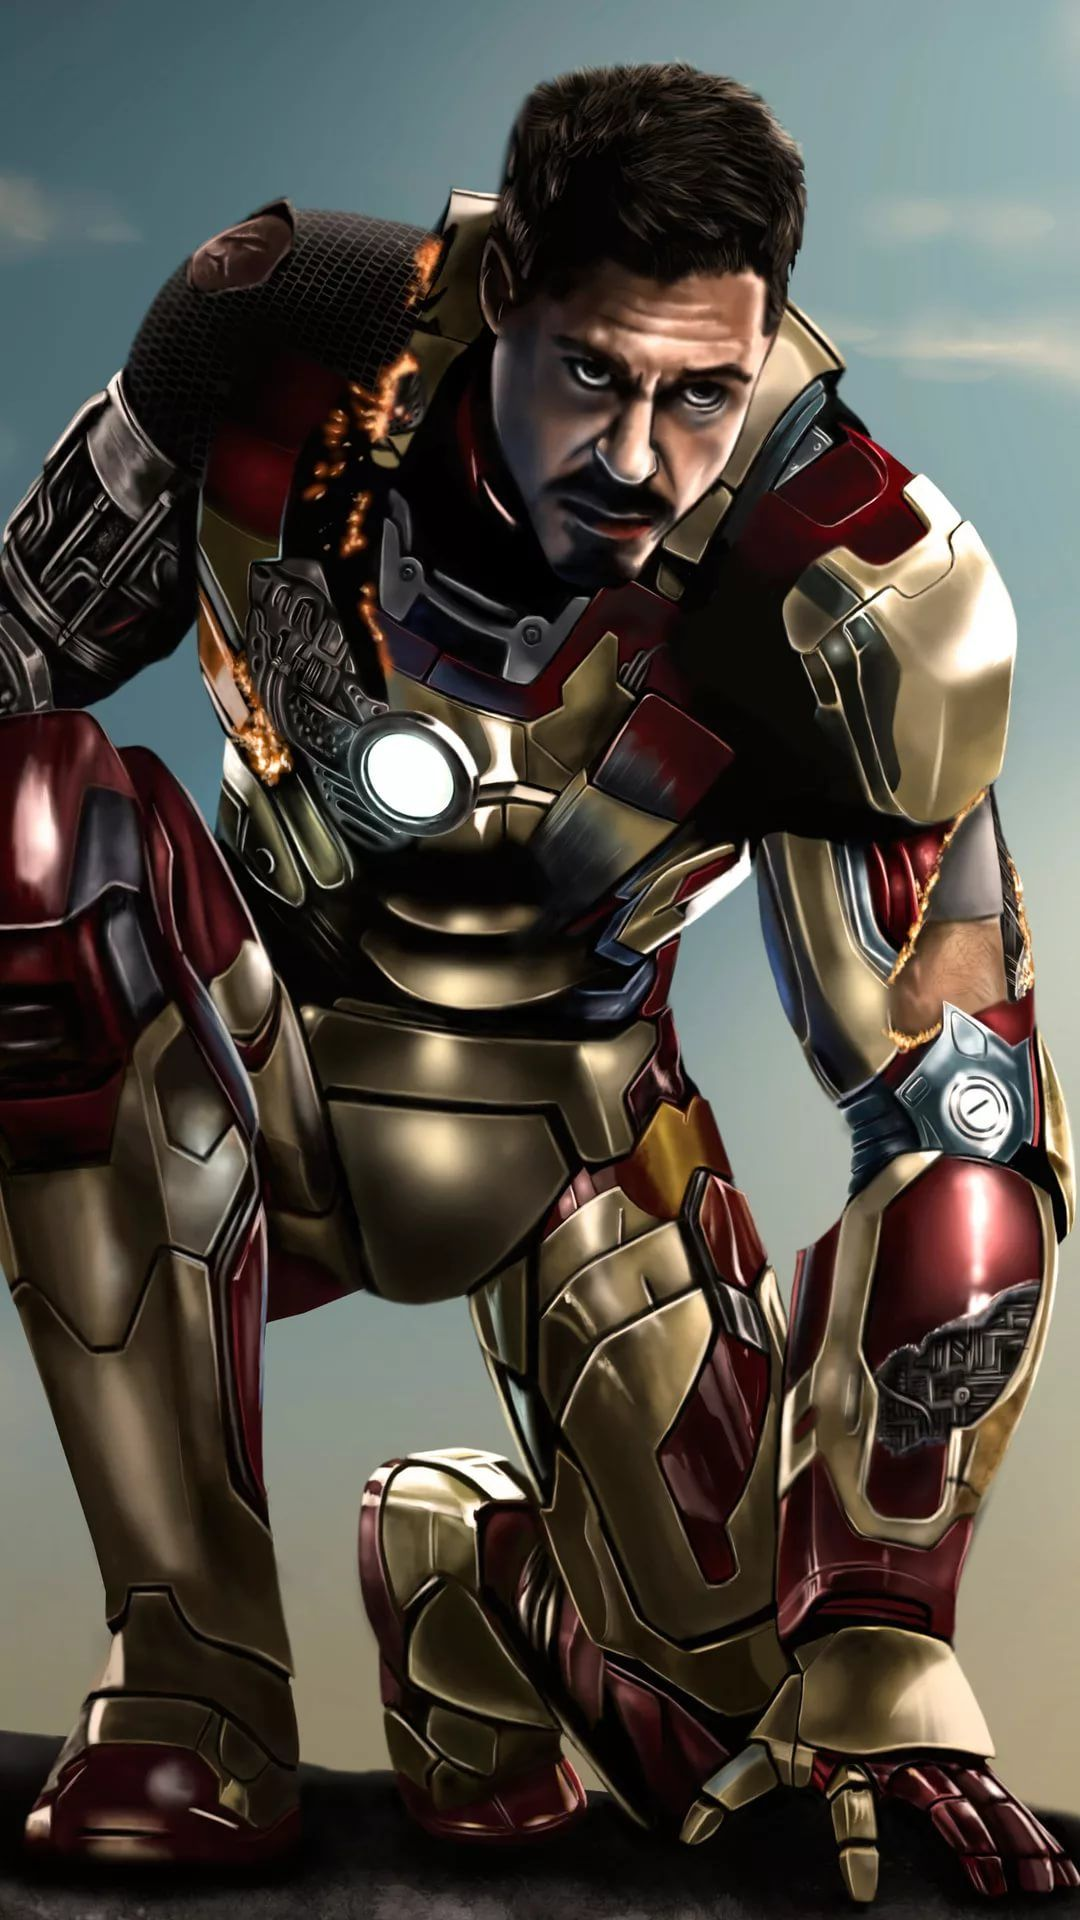 Iron Man For Mobile phone background